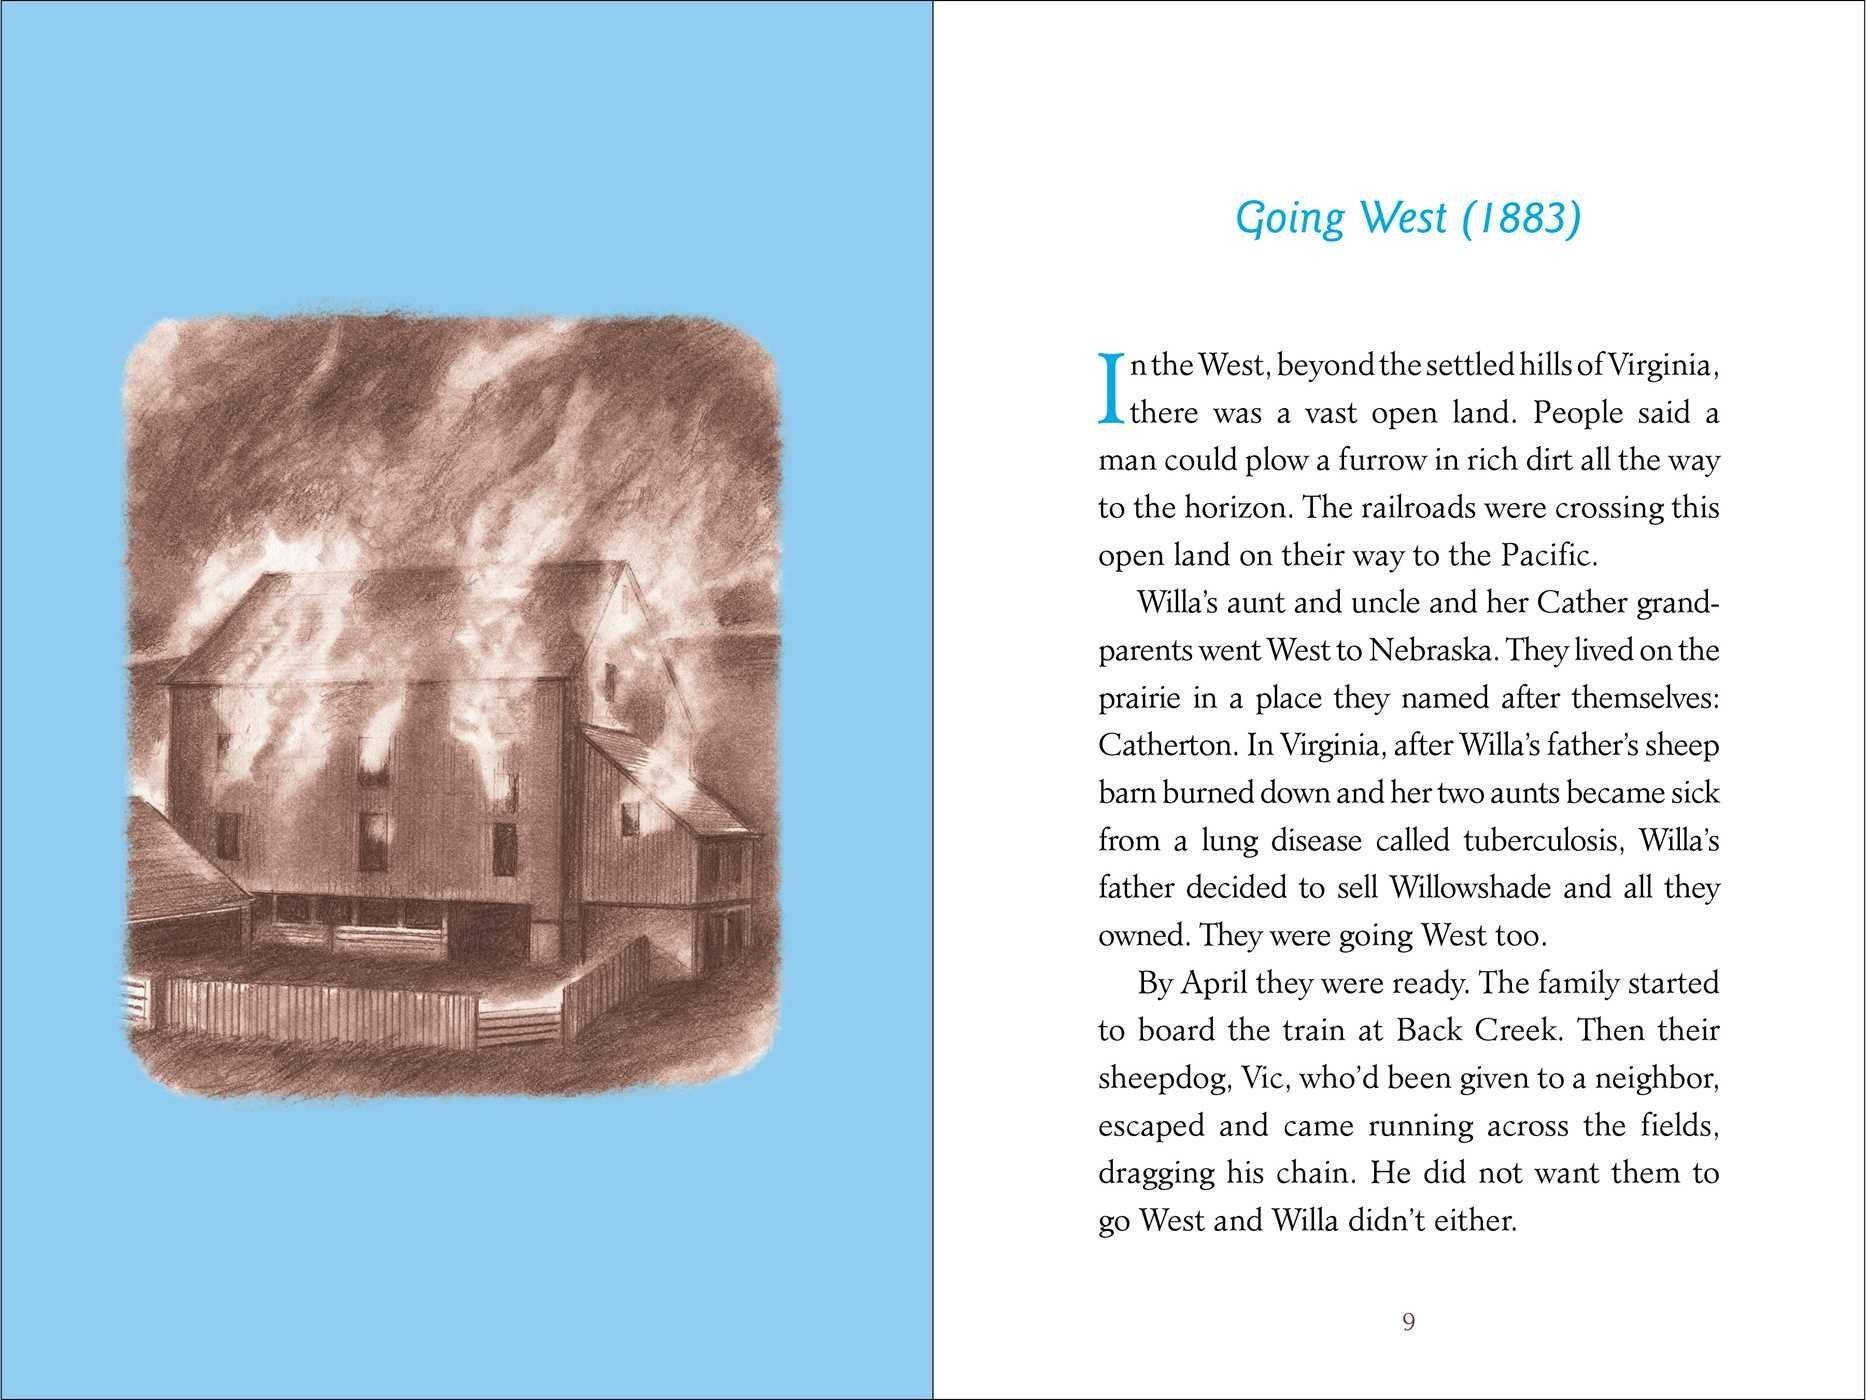 Willa: The Story of Willa Cather, an American Writer (American Women Writers) by Simon Schuster Paula Wiseman Books (Image #6)